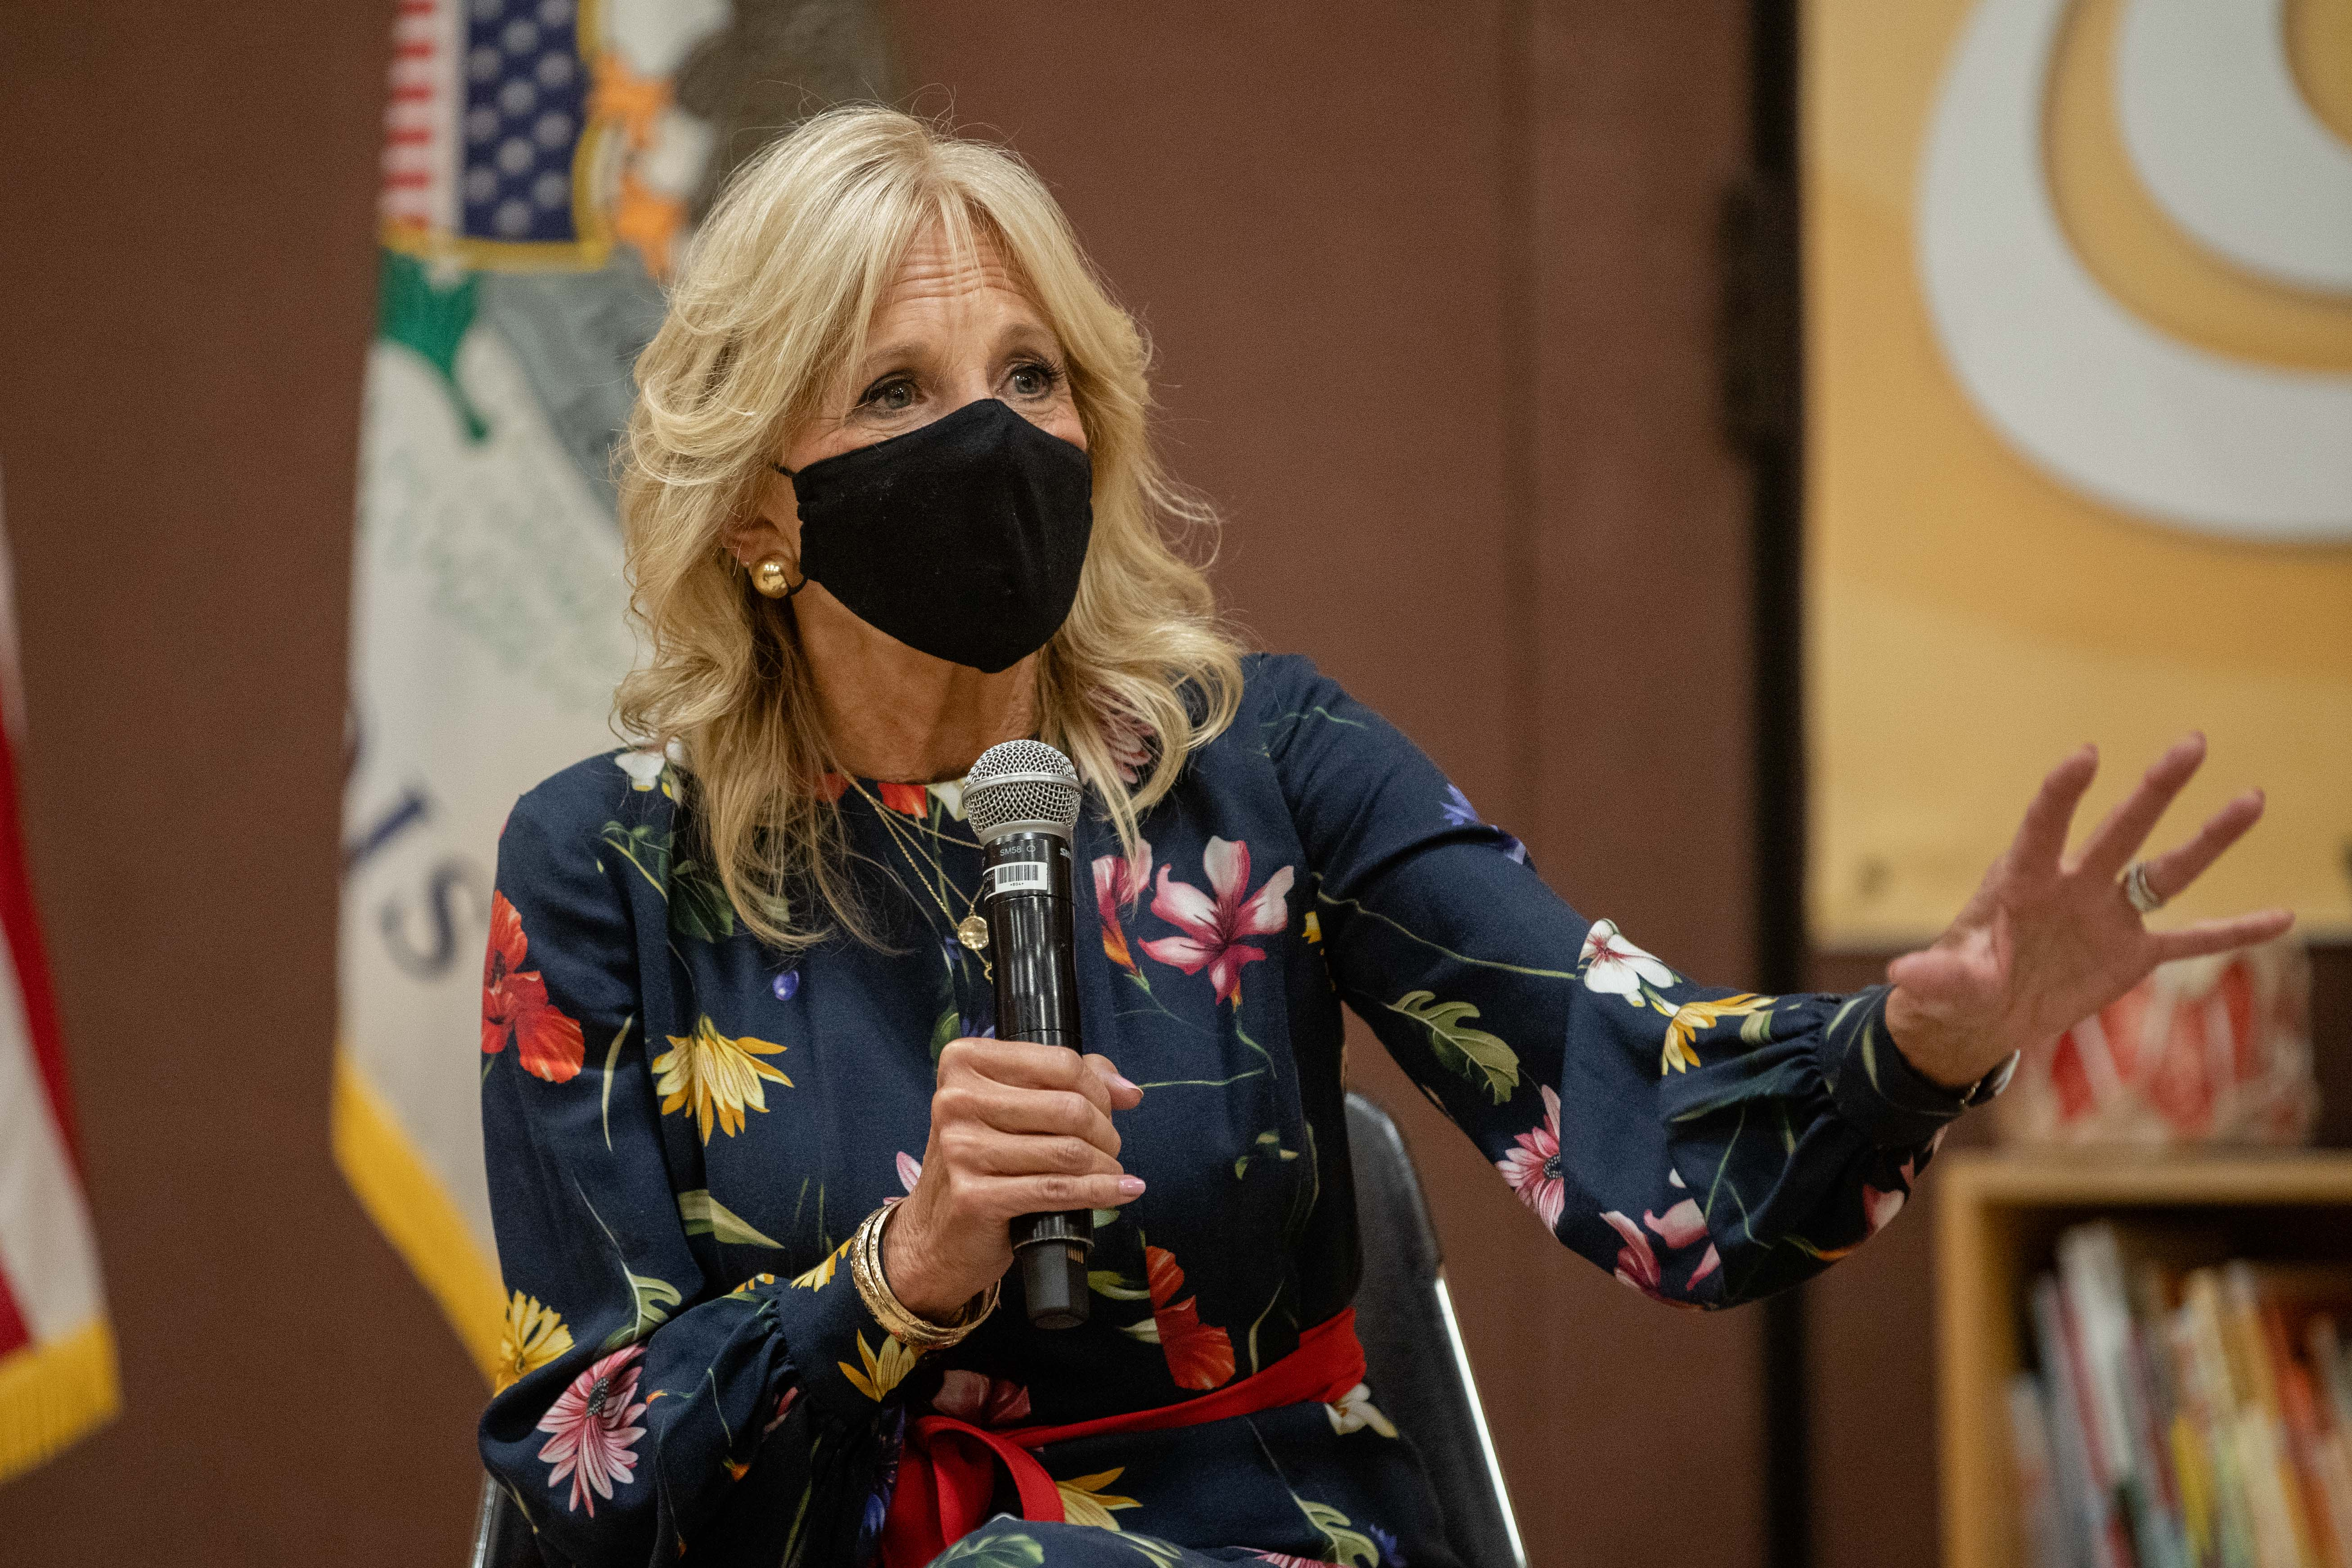 First lady Jill Biden speaks with community leaders and Education Secretary Miguel Cardona at Arturo Velasquez Institute on Wednesday, Oct. 13, 2021.